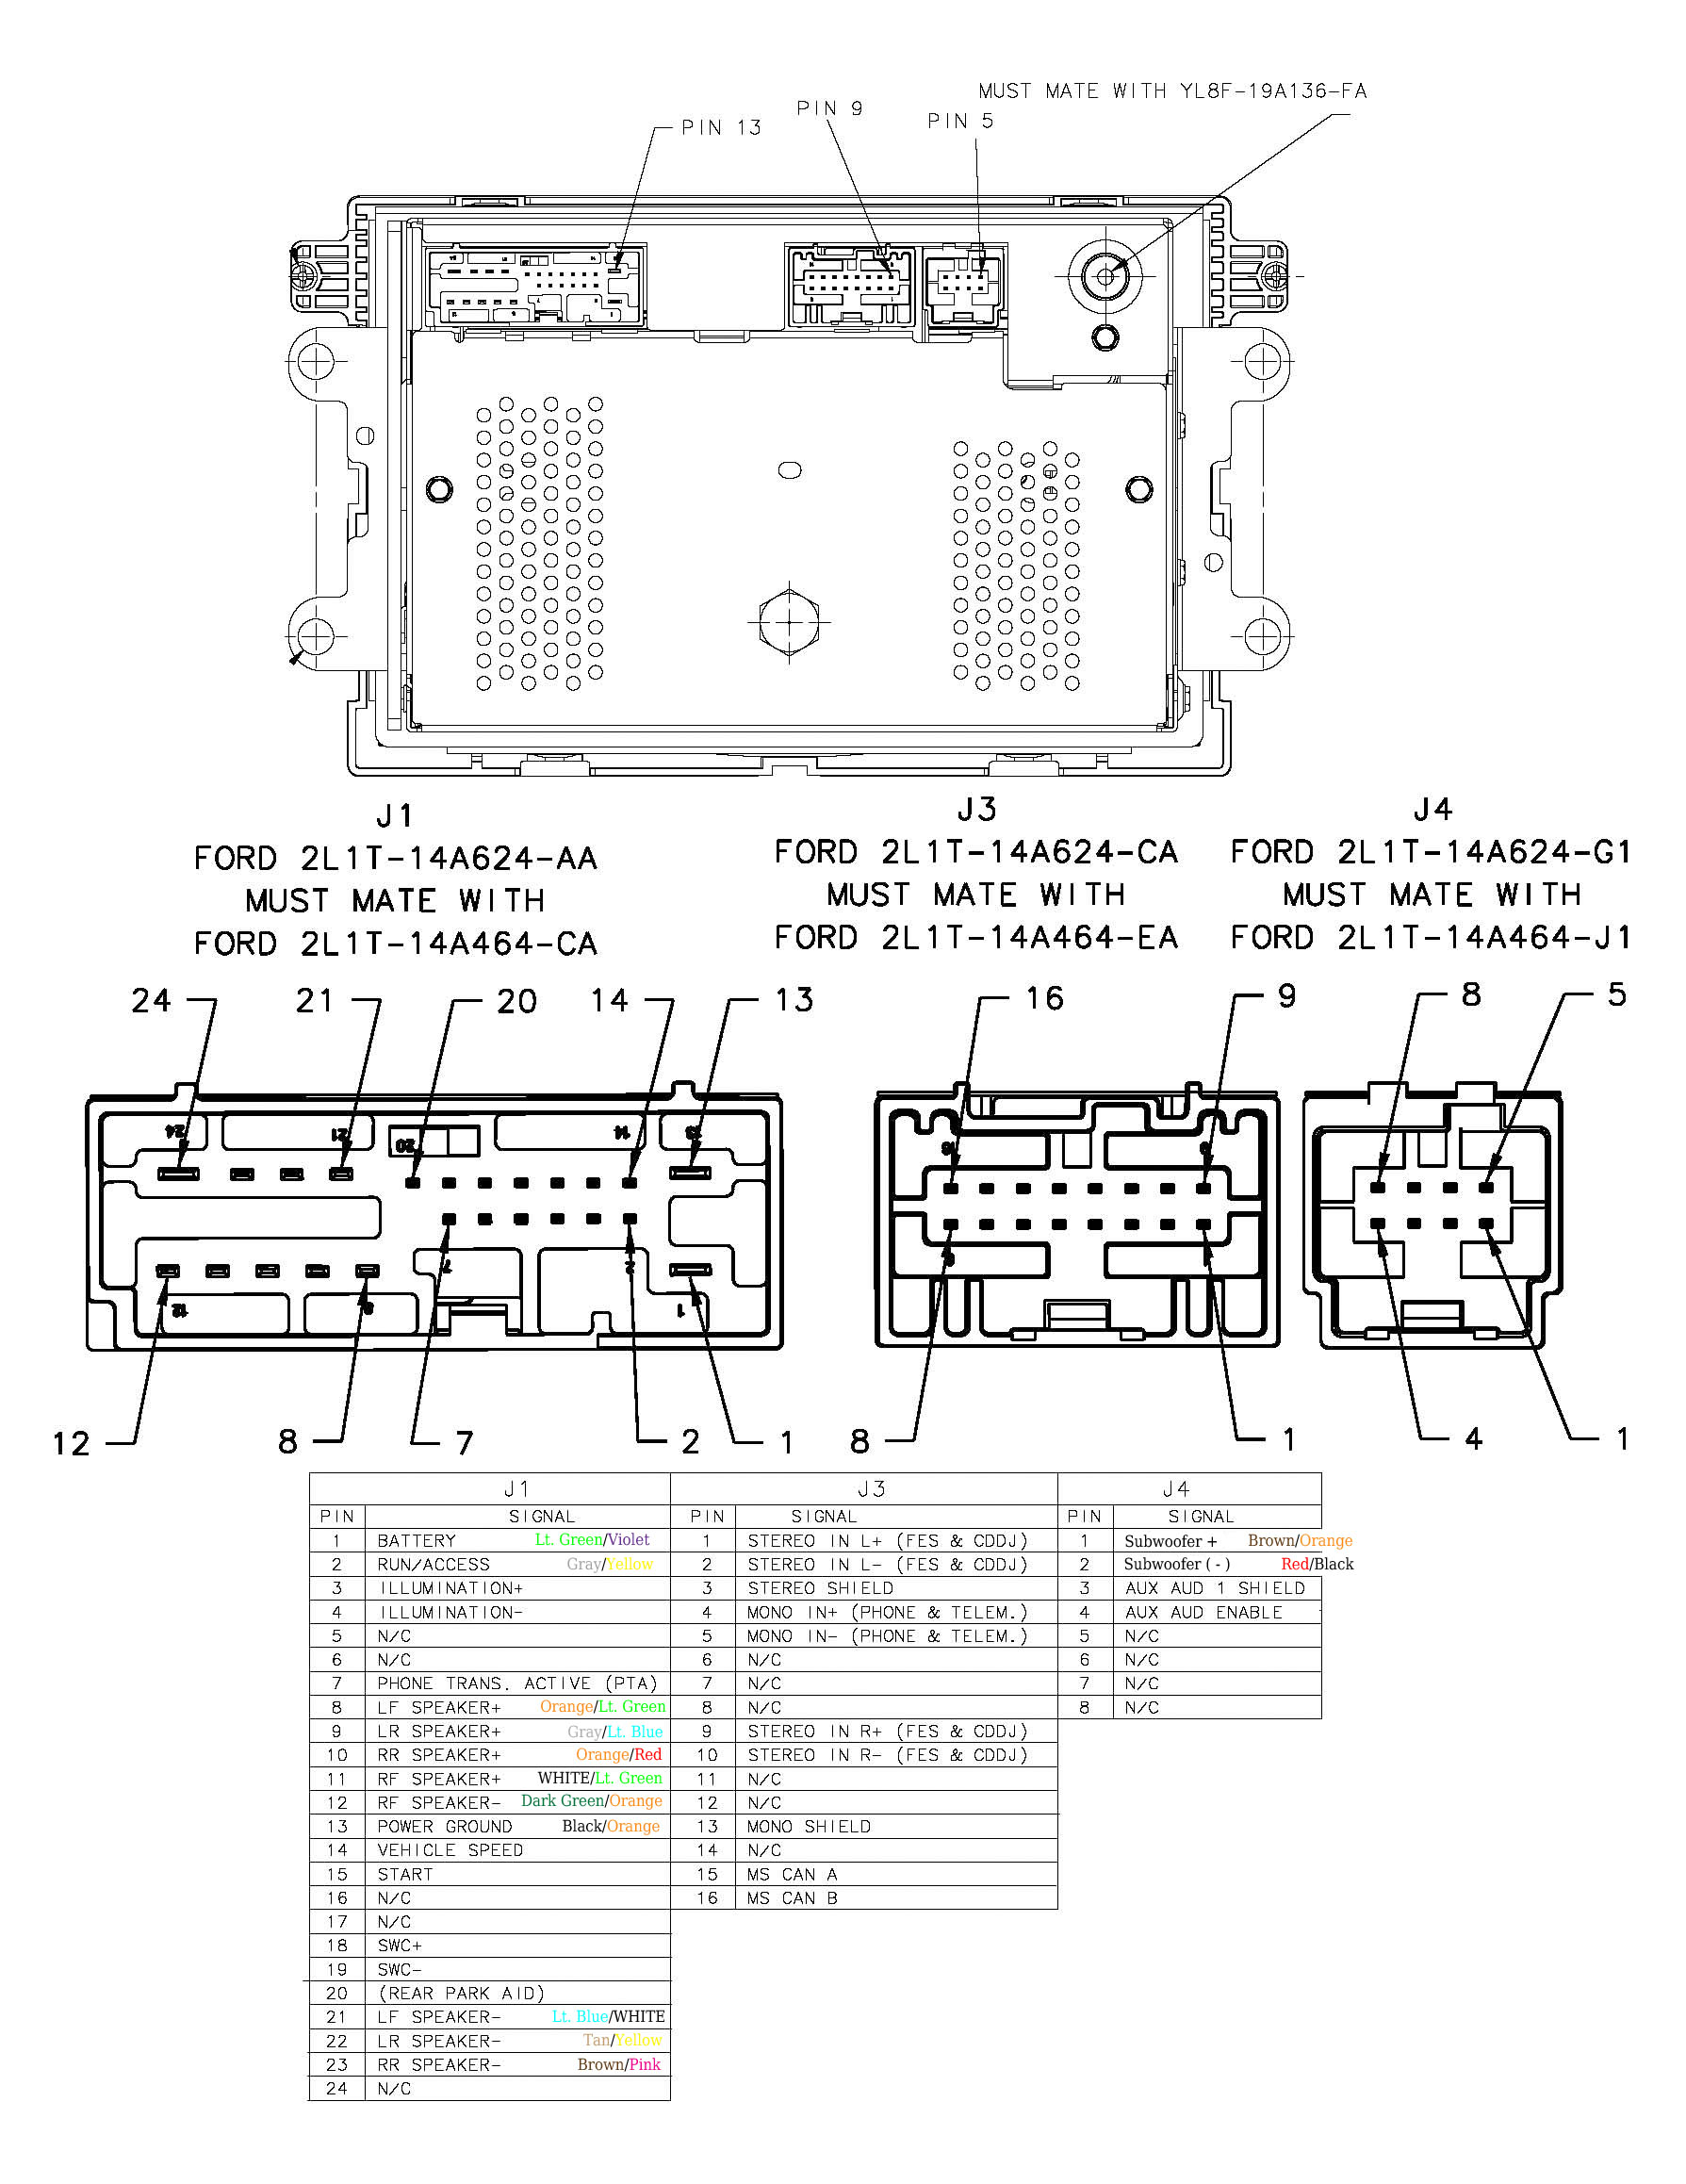 2006 Ford F150 Radio Wiring Harness Shaker 500 Wire Color Diagram Pinout With Wire Colors